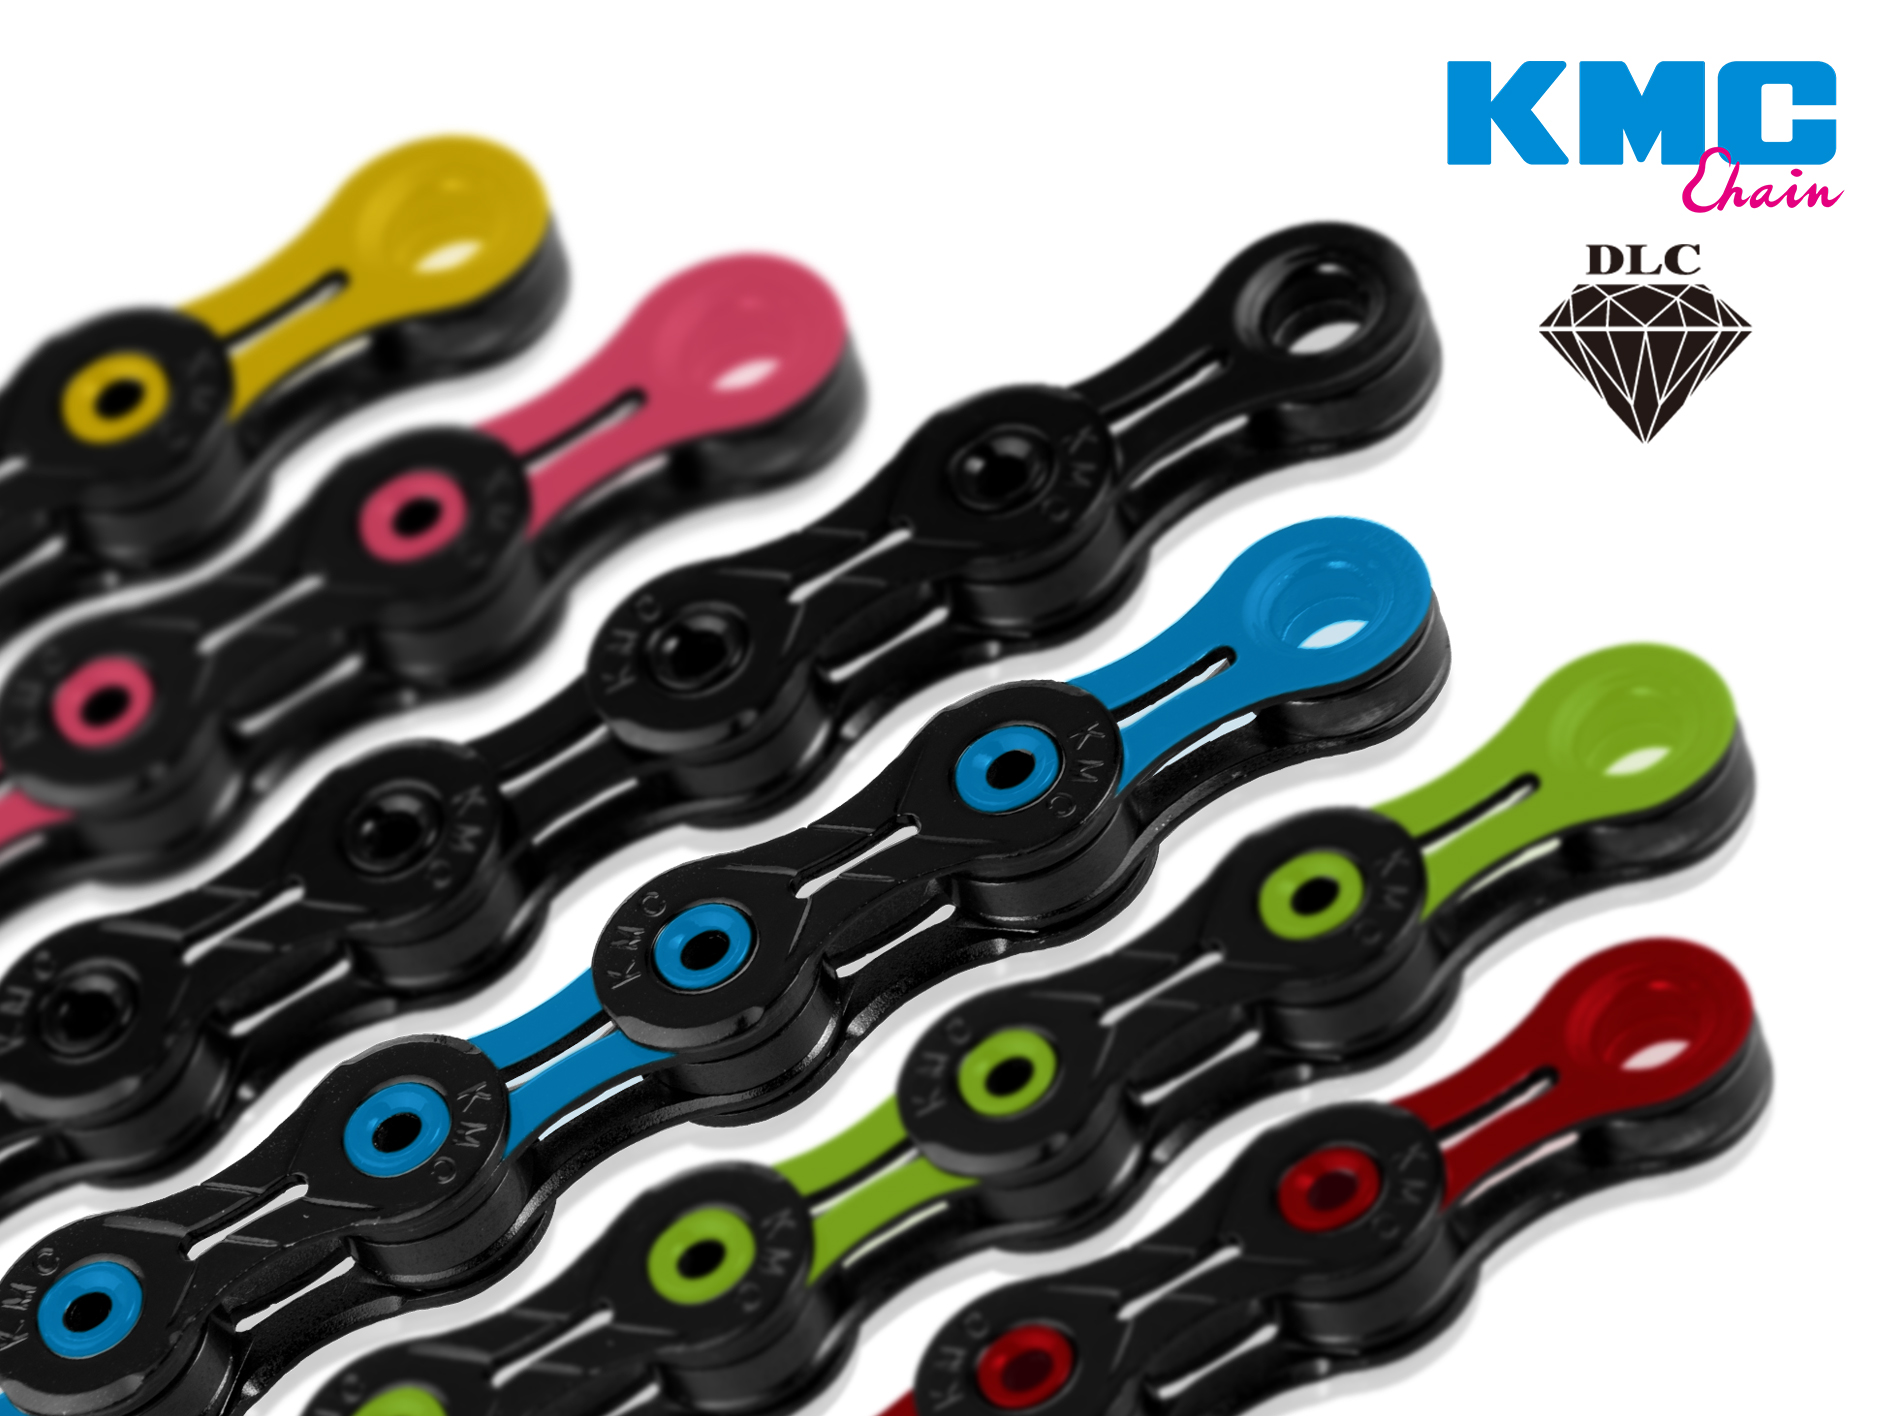 Bicycle Chain / KMC CHAIN INDUSTRIAL CO., LTD.